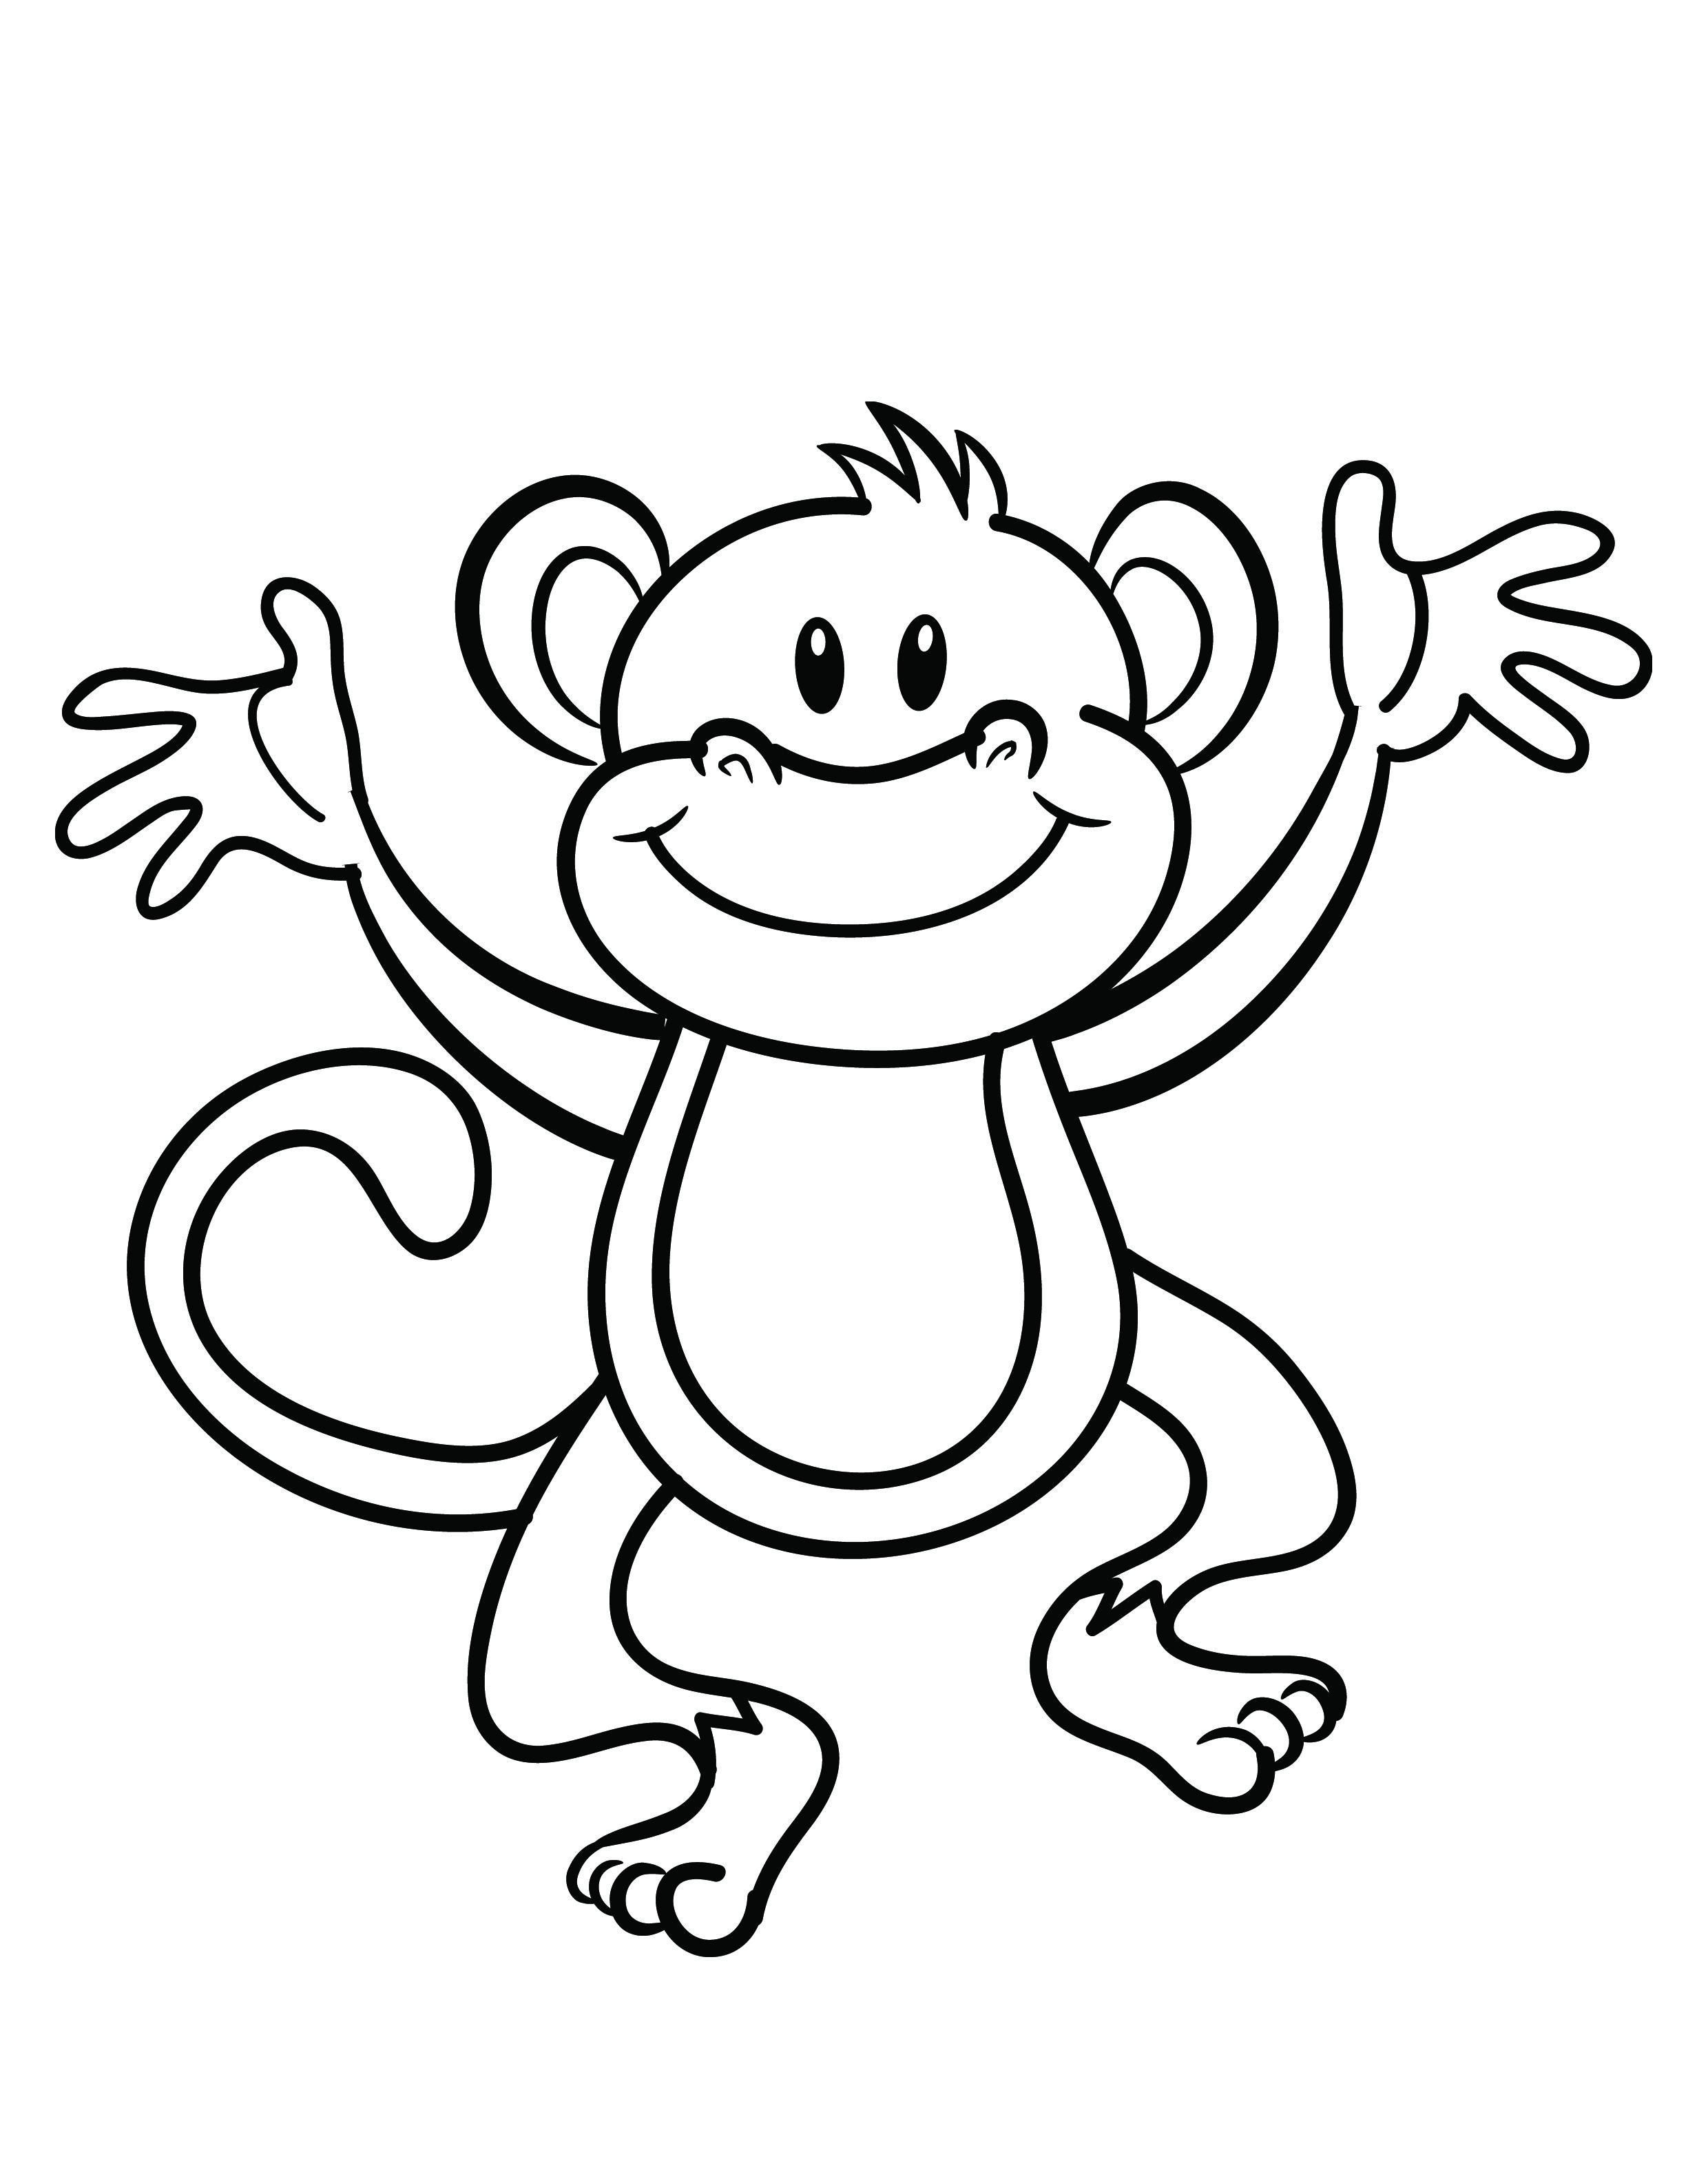 monkey pictures to color kids monkey coloring page wecoloringpagecom pictures monkey to color